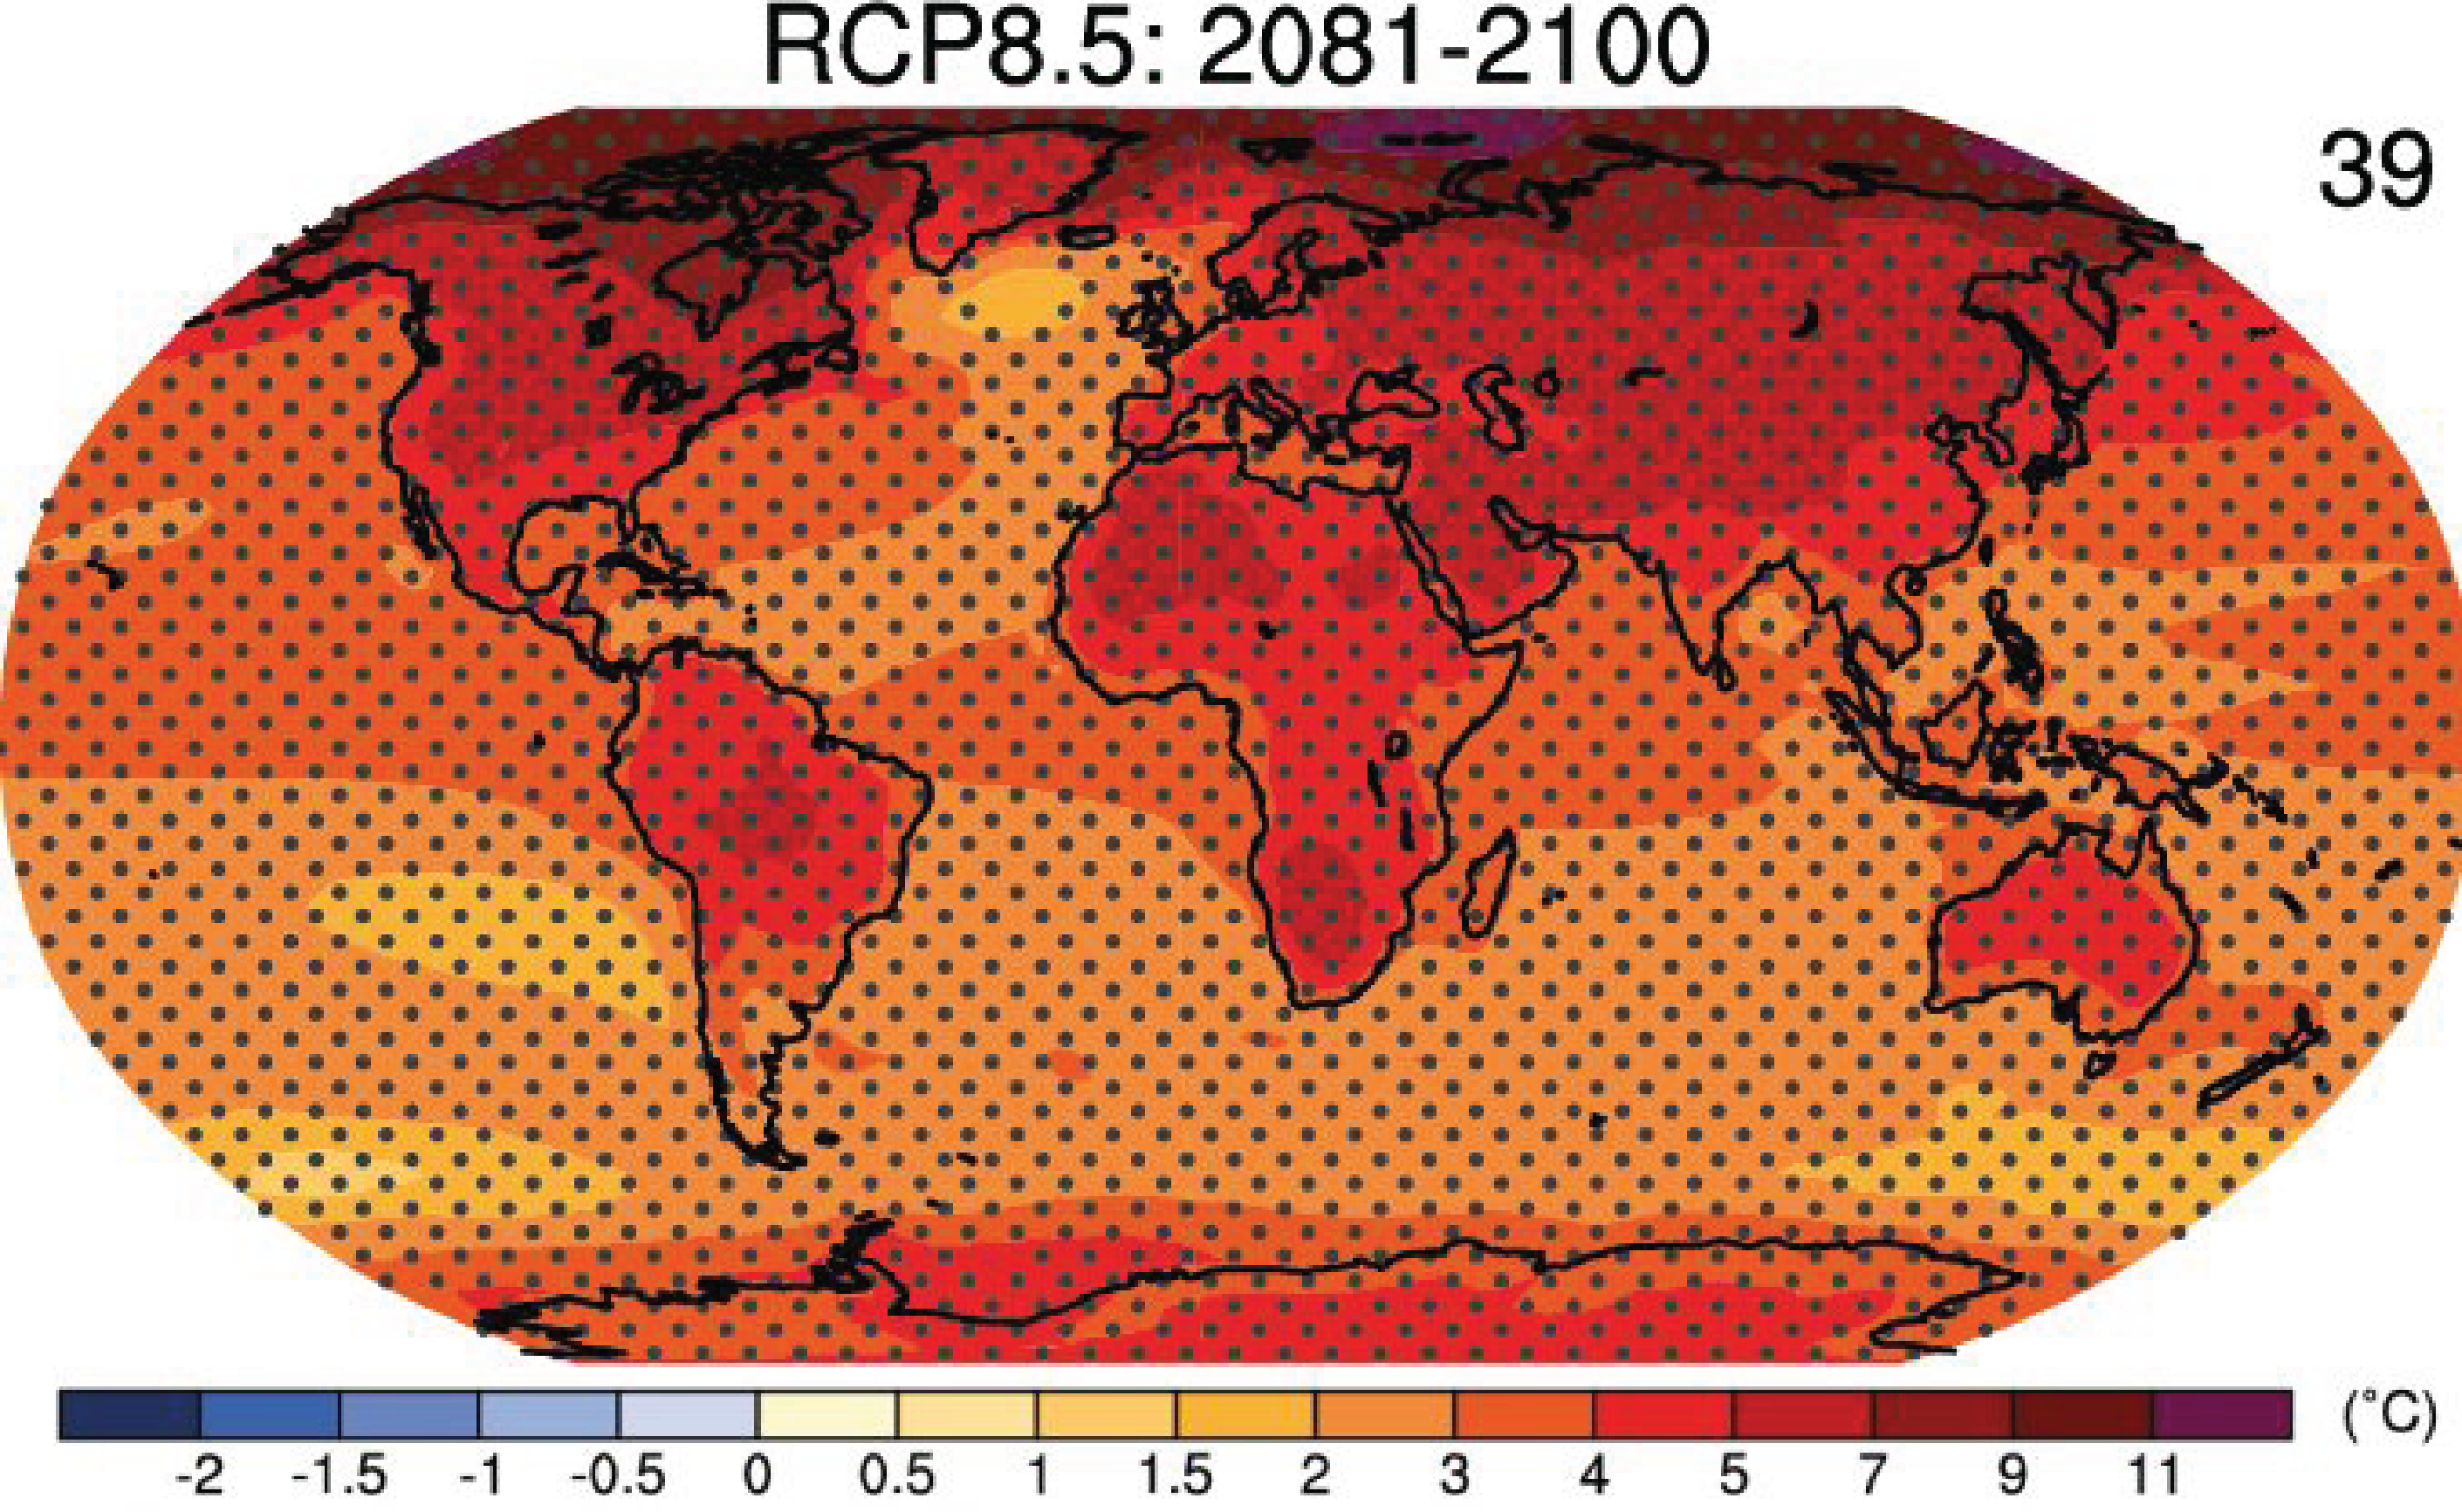 Surface temperature changes projected for the business-as-usual scenario RCP8.5 at the end of the 21st century. Stippling indicates regions of highly significant changes, where the multi model mean is larger than two standard deviations of modeled internal variability and where at least 90% of models agree on the sign of the change. Click on the map to see projections for other scenarios and times. From ipcc.ch.